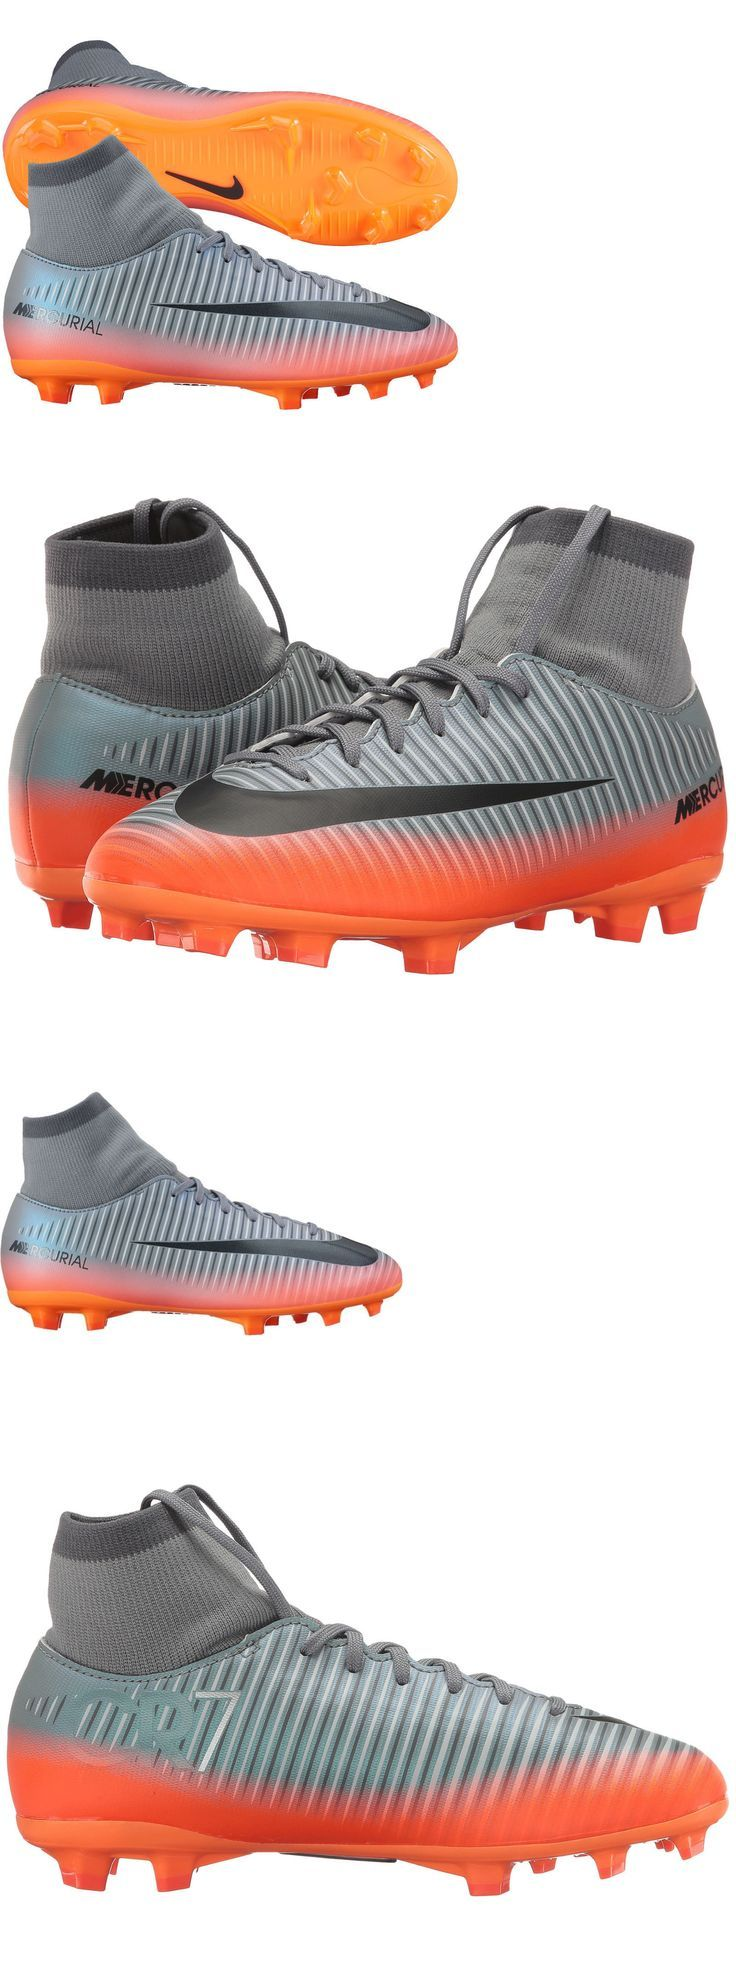 Adidas Messi IN Artificial Grass / Turf Soccer Shoes - Men\u0027s Sizes Adidas  Messi Indoor Shoes Image is loading Men-Football-Boots-Boys-Kids